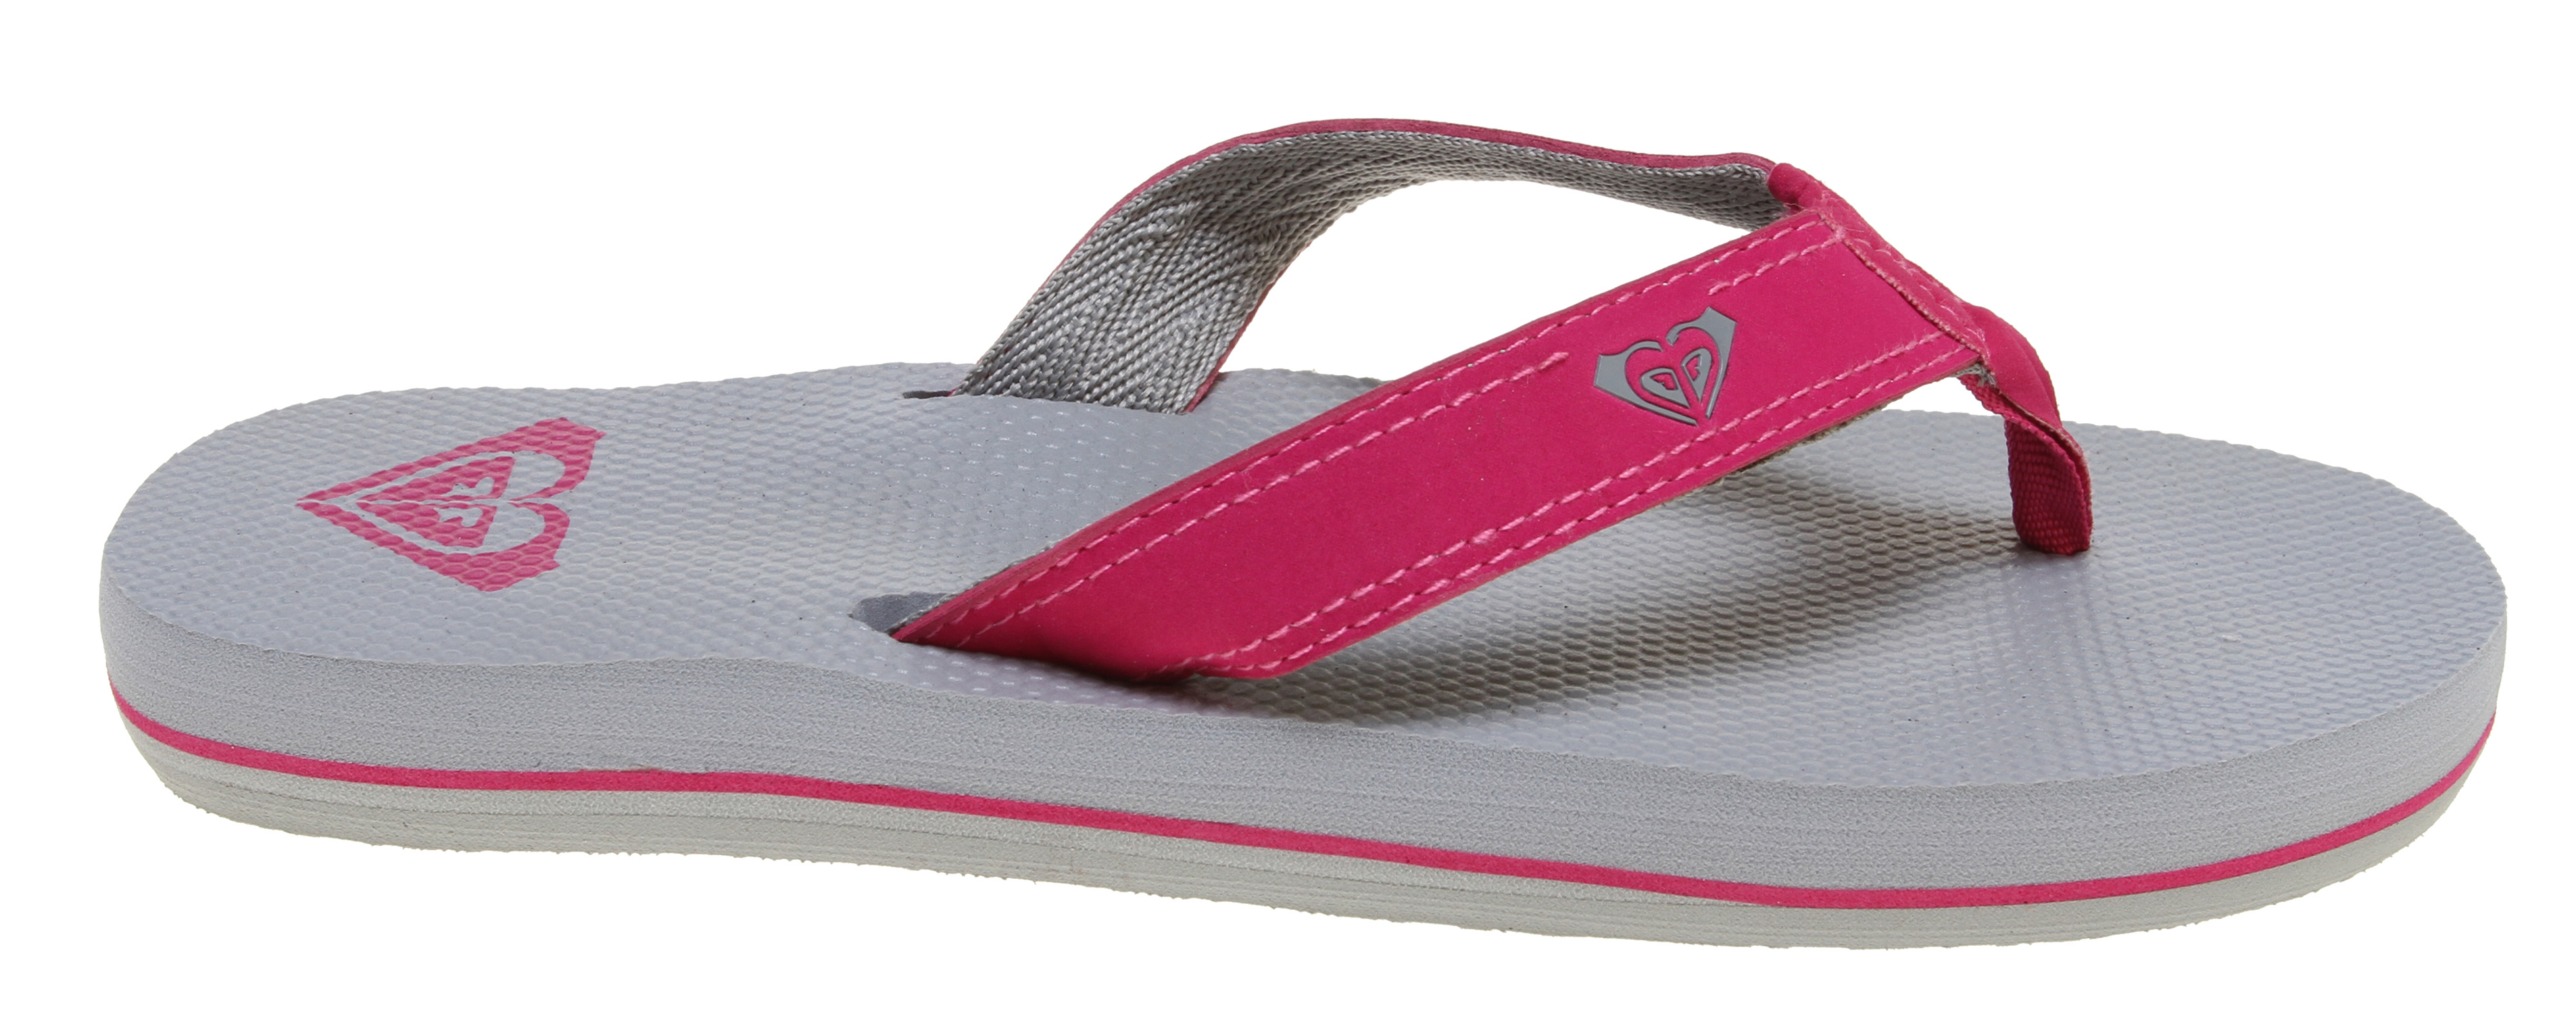 Surf Embrace your comfort chakra. Roxy's extra thick, super soft rubber flip-flops have an EVA insole and water-friendly poly-web lining. - $17.95